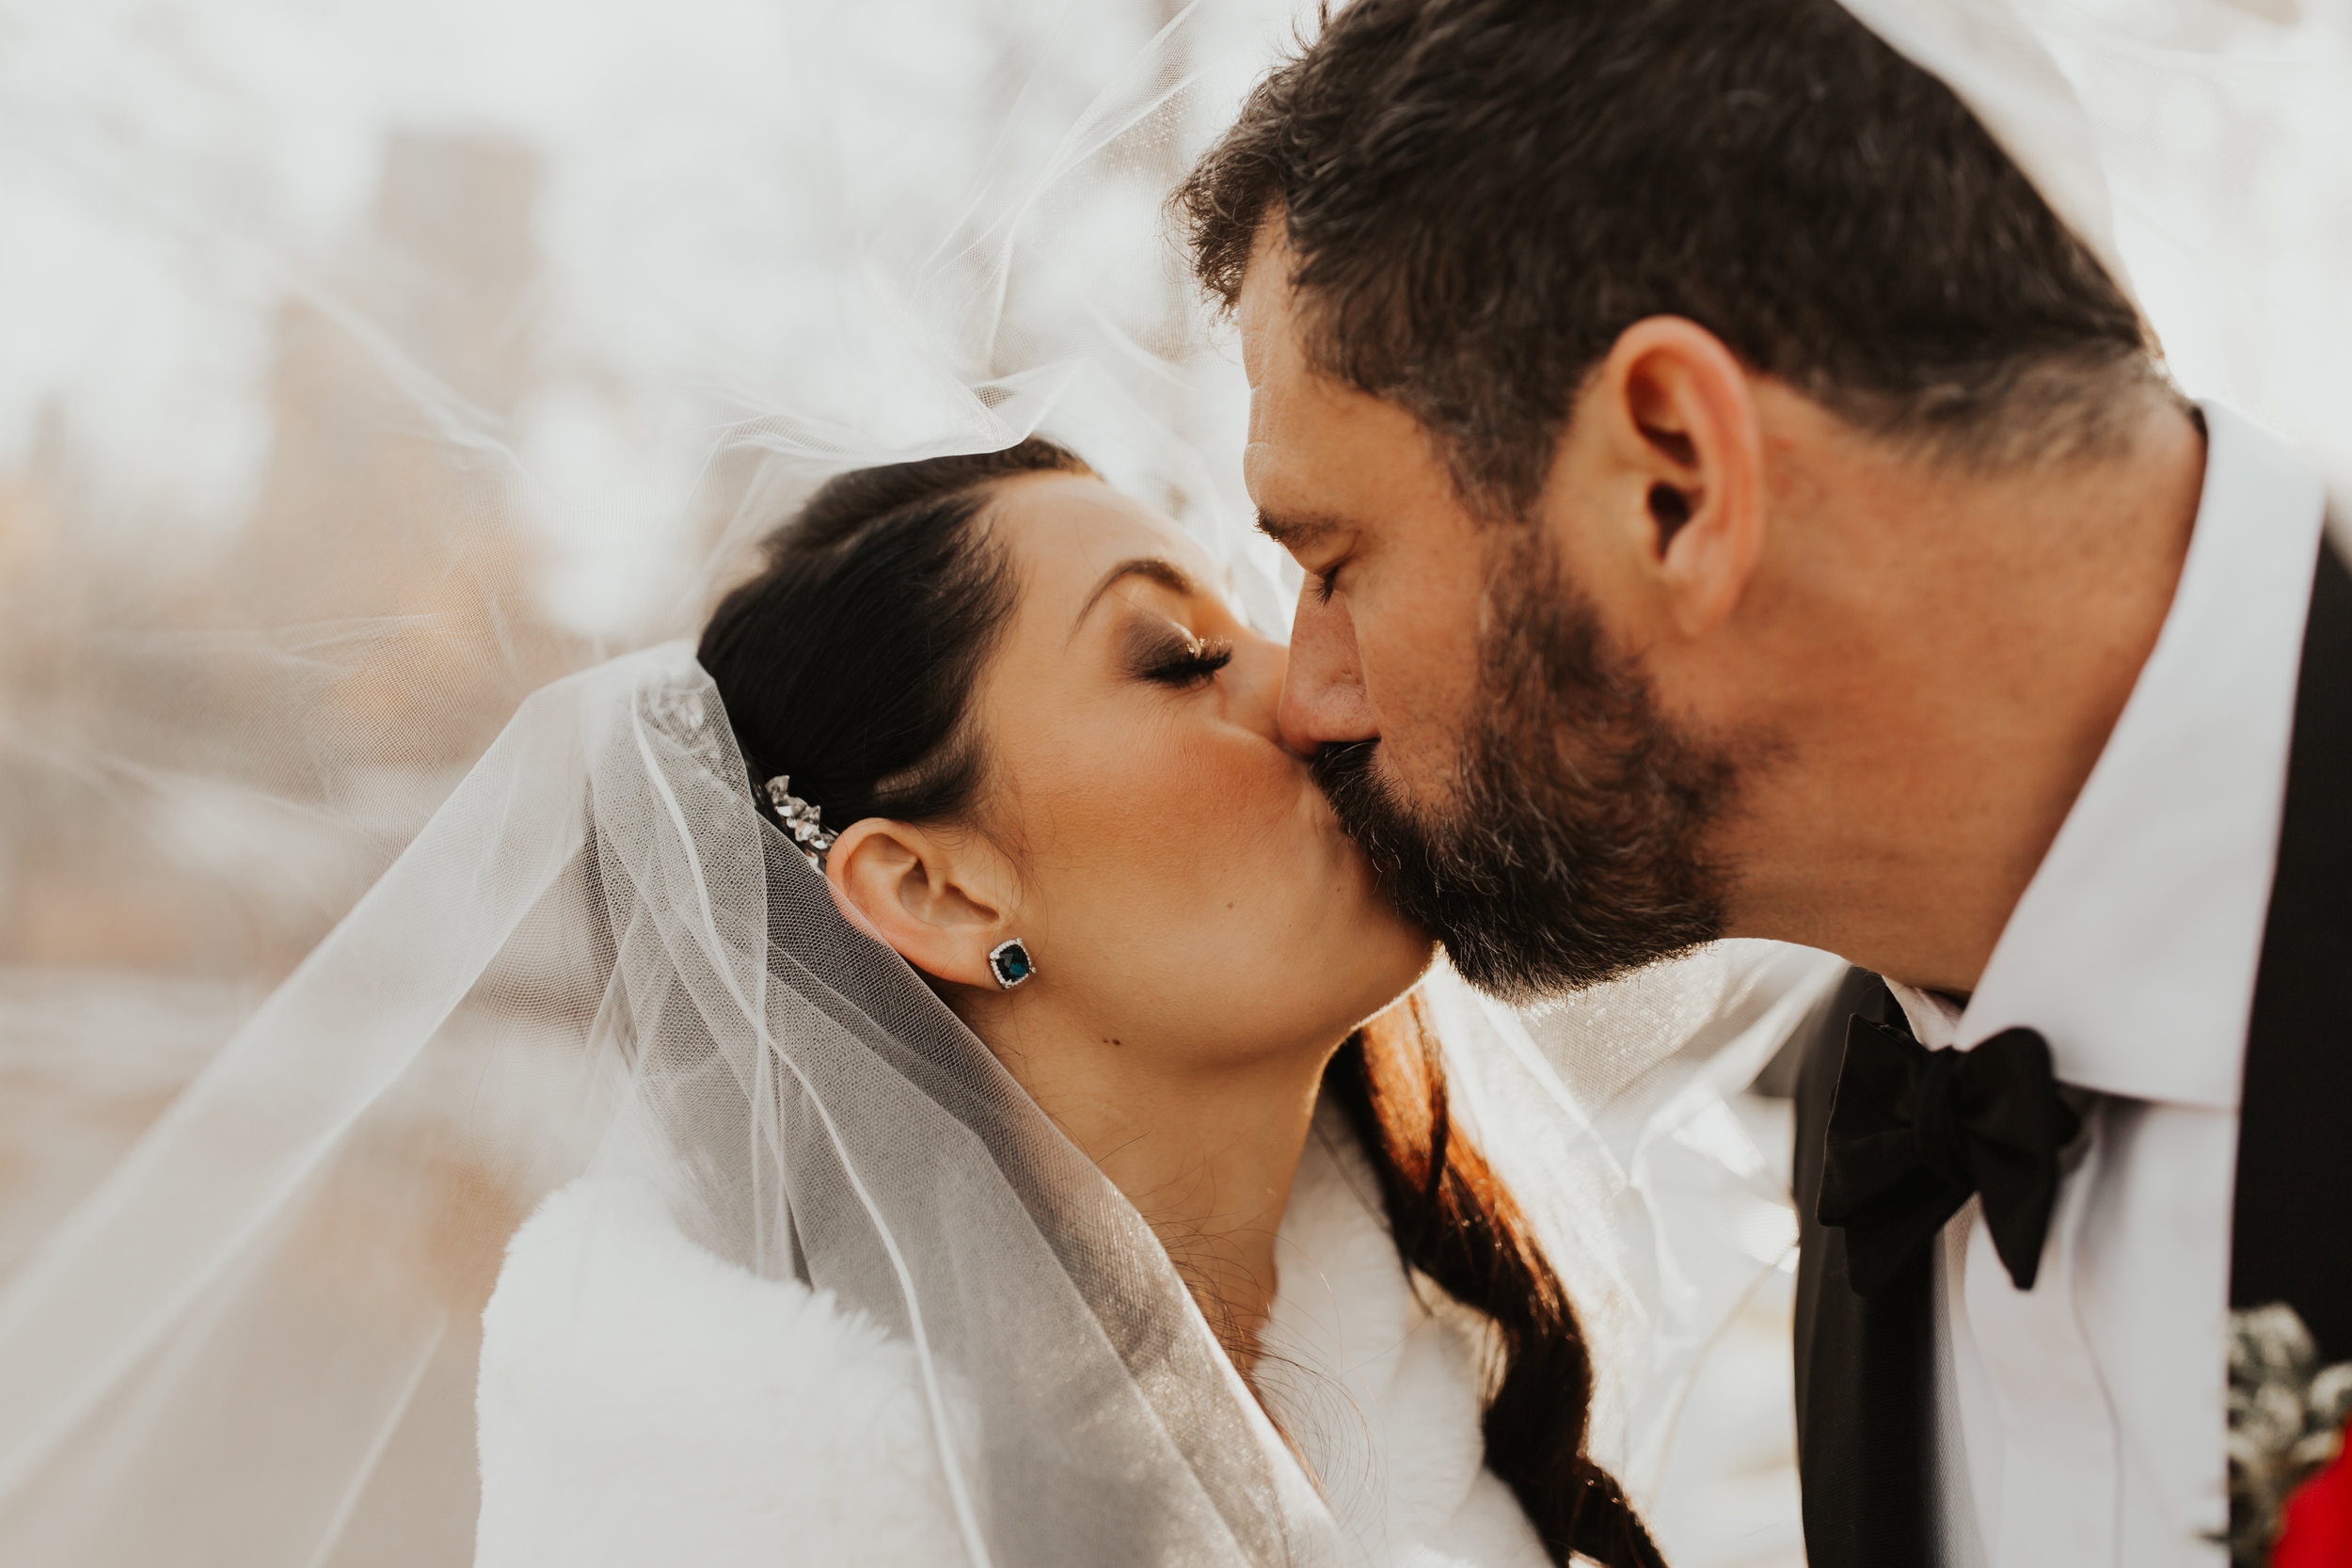 Brian + Natalie - Intimate Ceremony in Old Town - Chicago